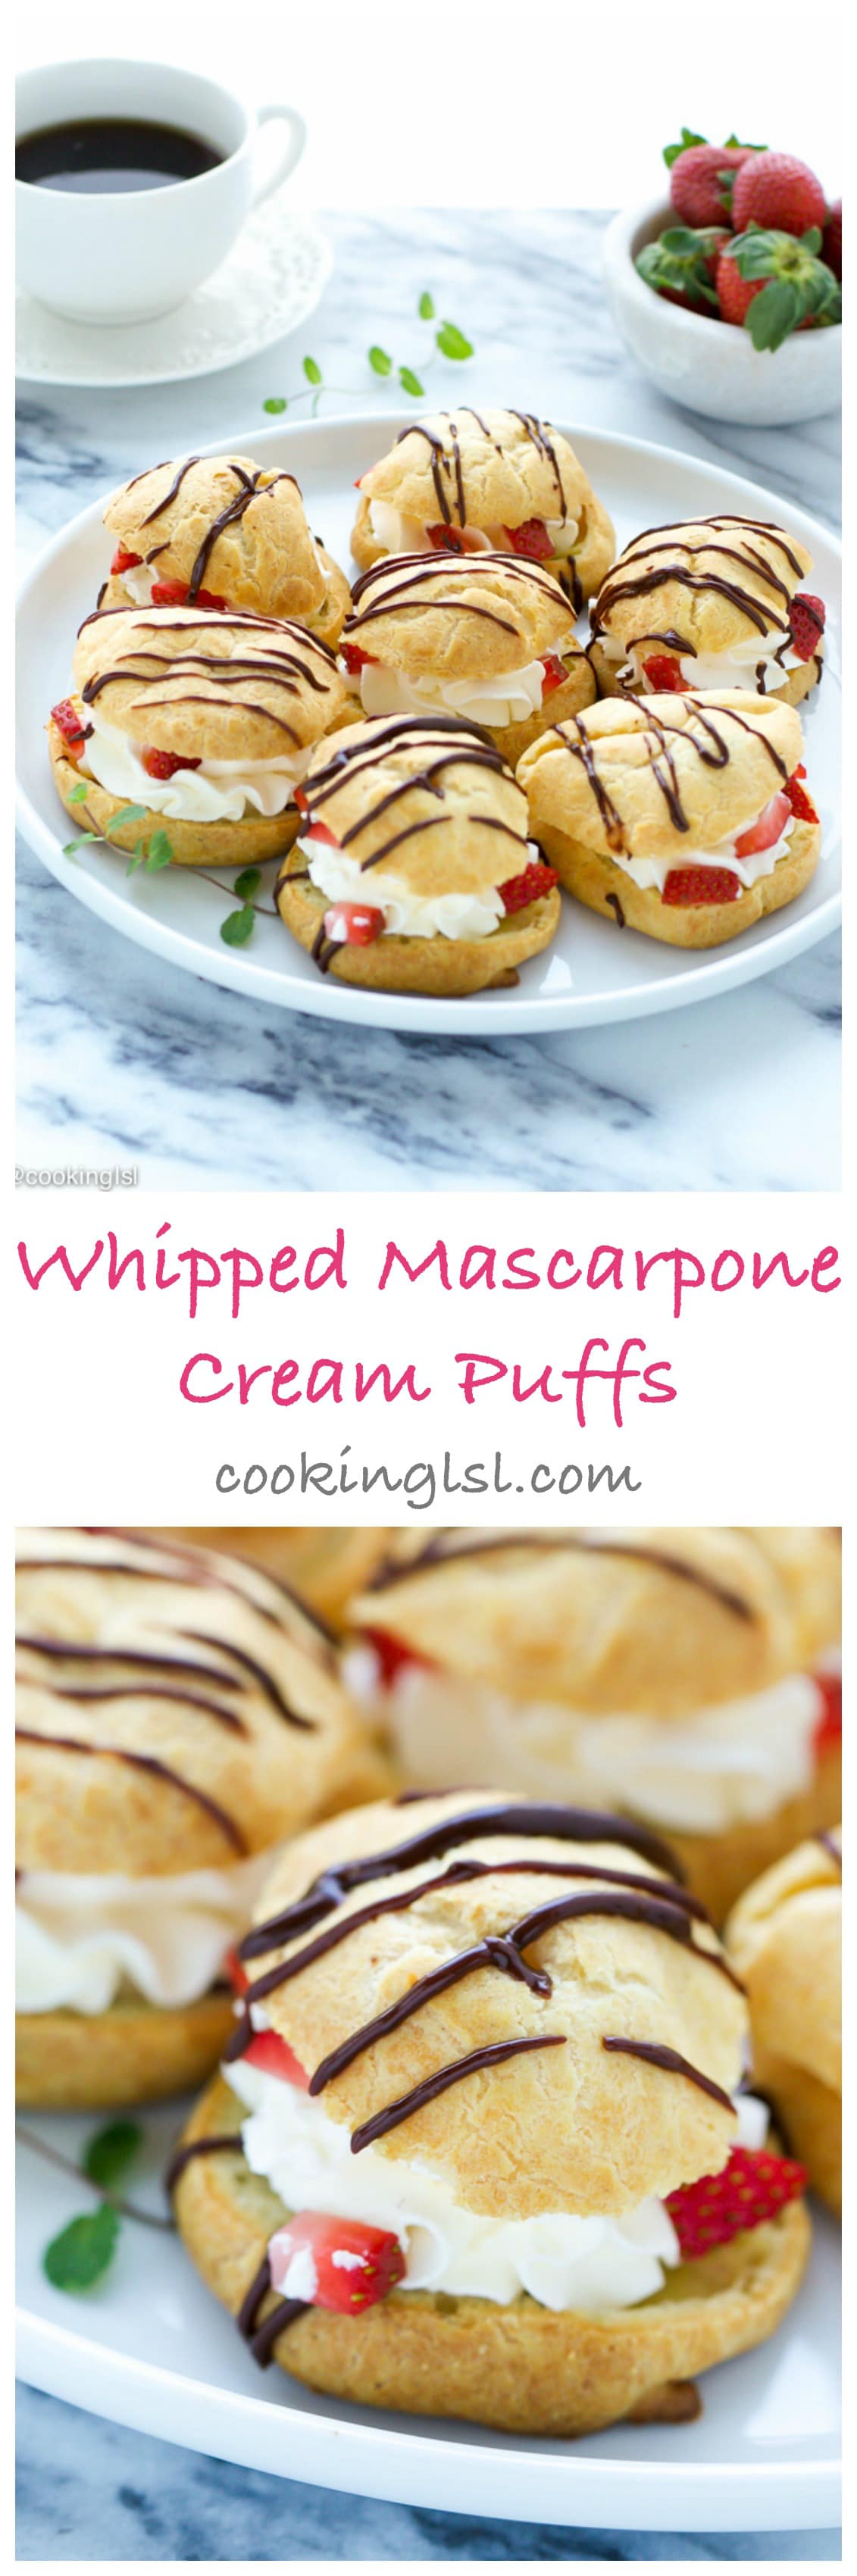 whipped-mascarpone-cream-puffs-recipe